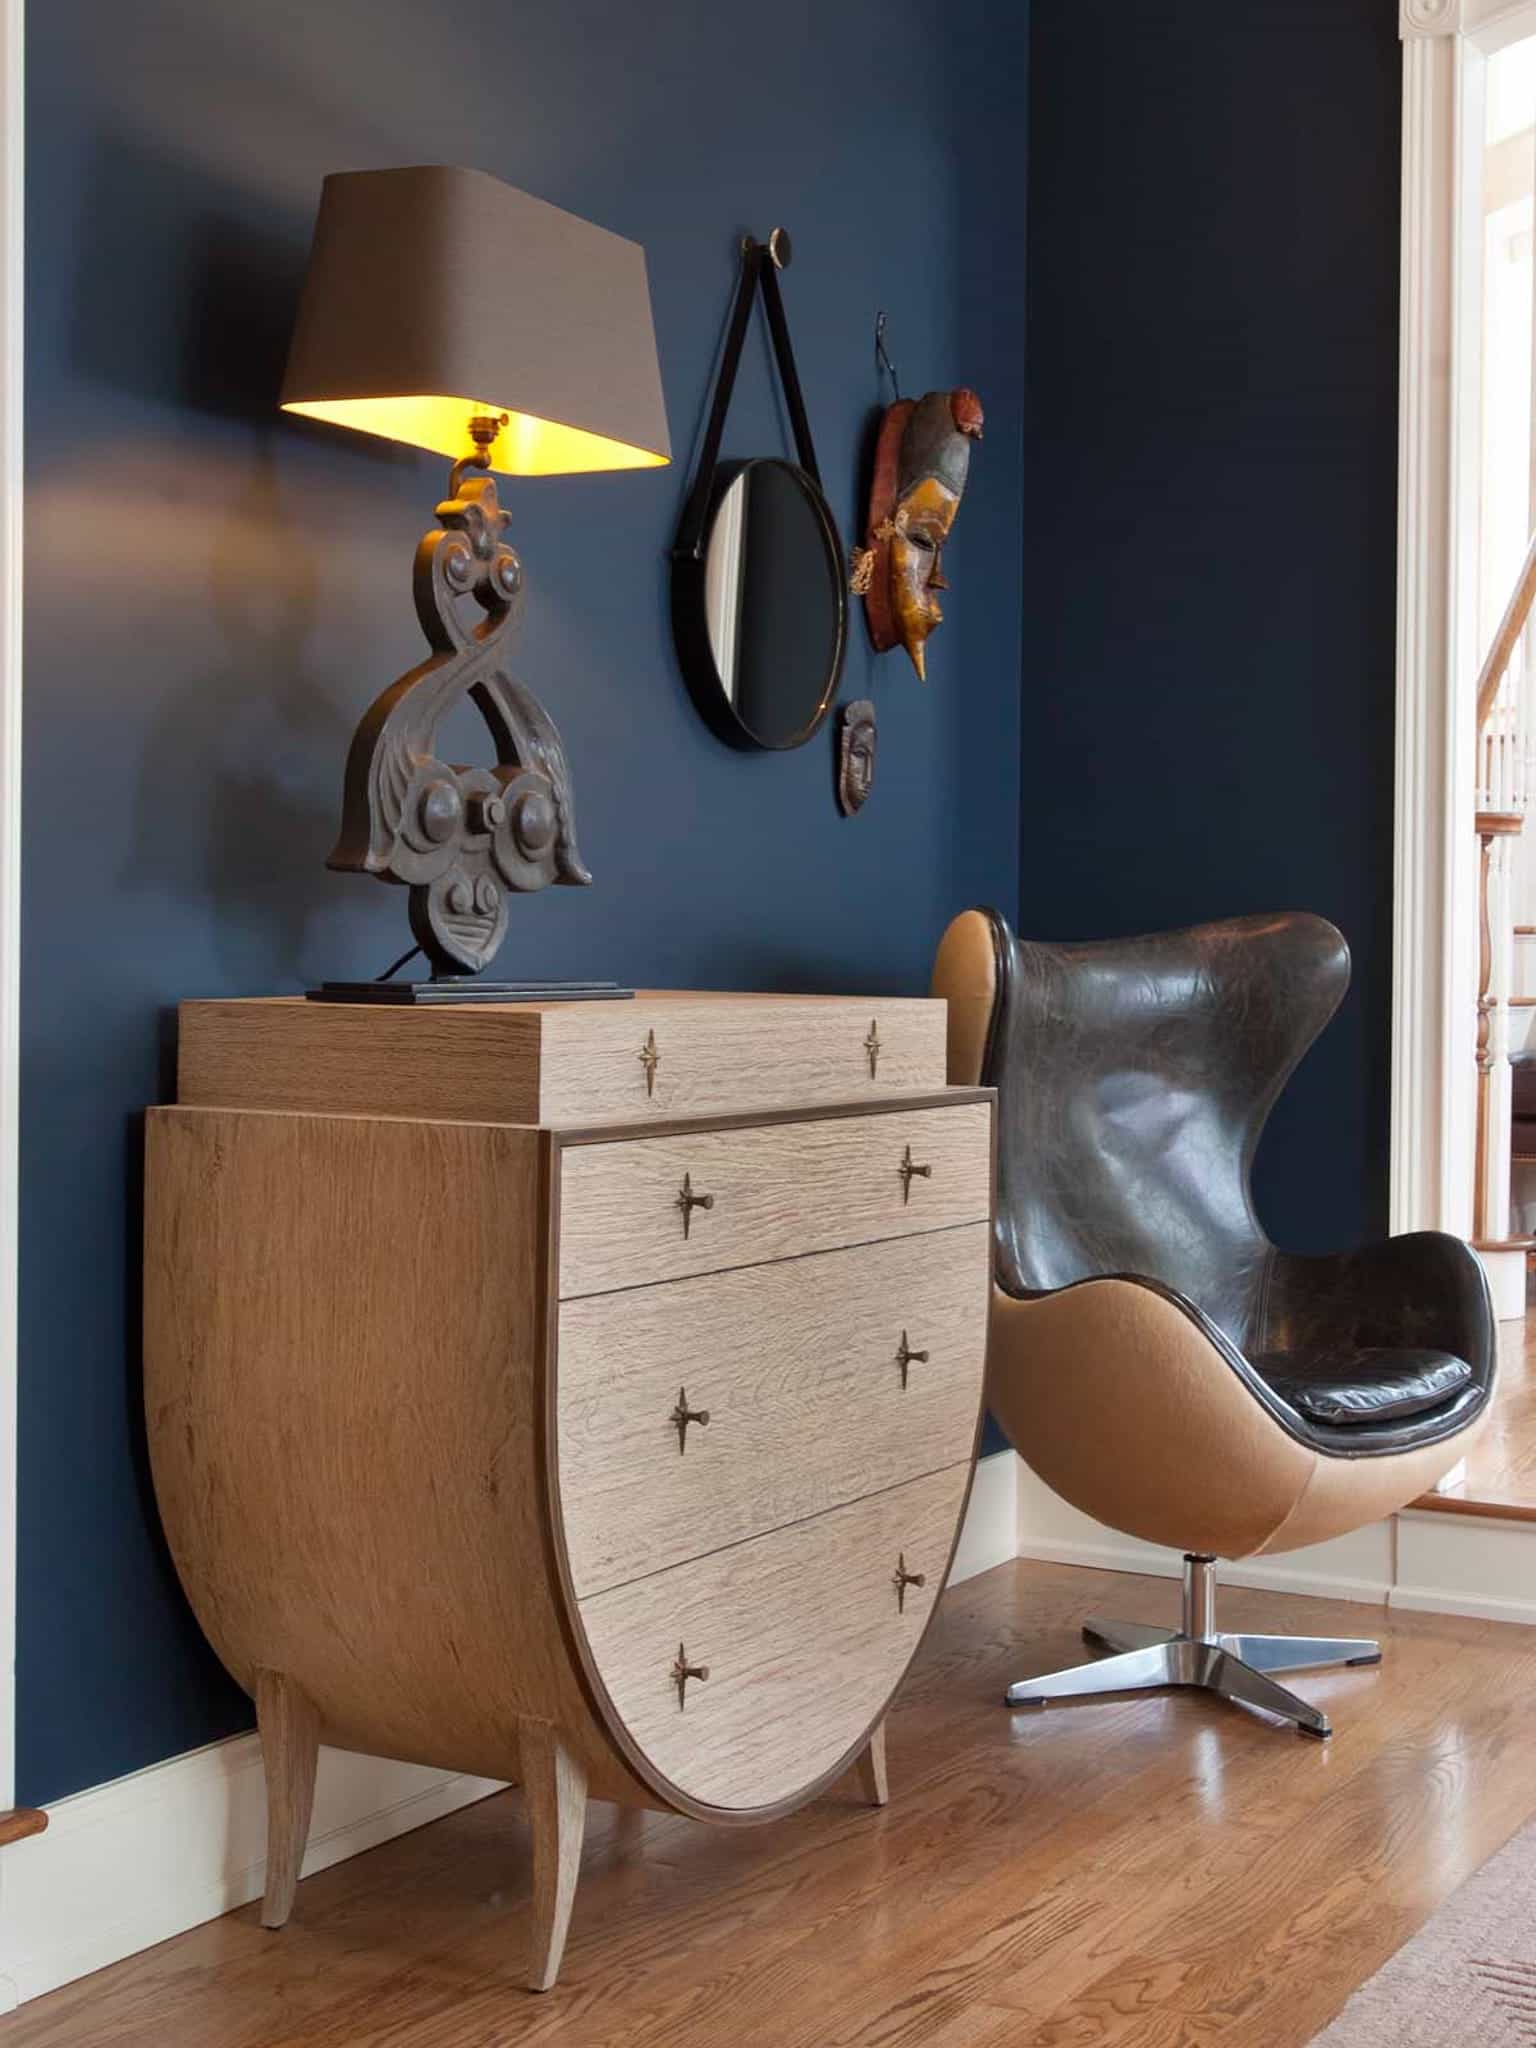 Unique Shape Modern Living Room Chairs And Cabinet (Image 7 of 15)